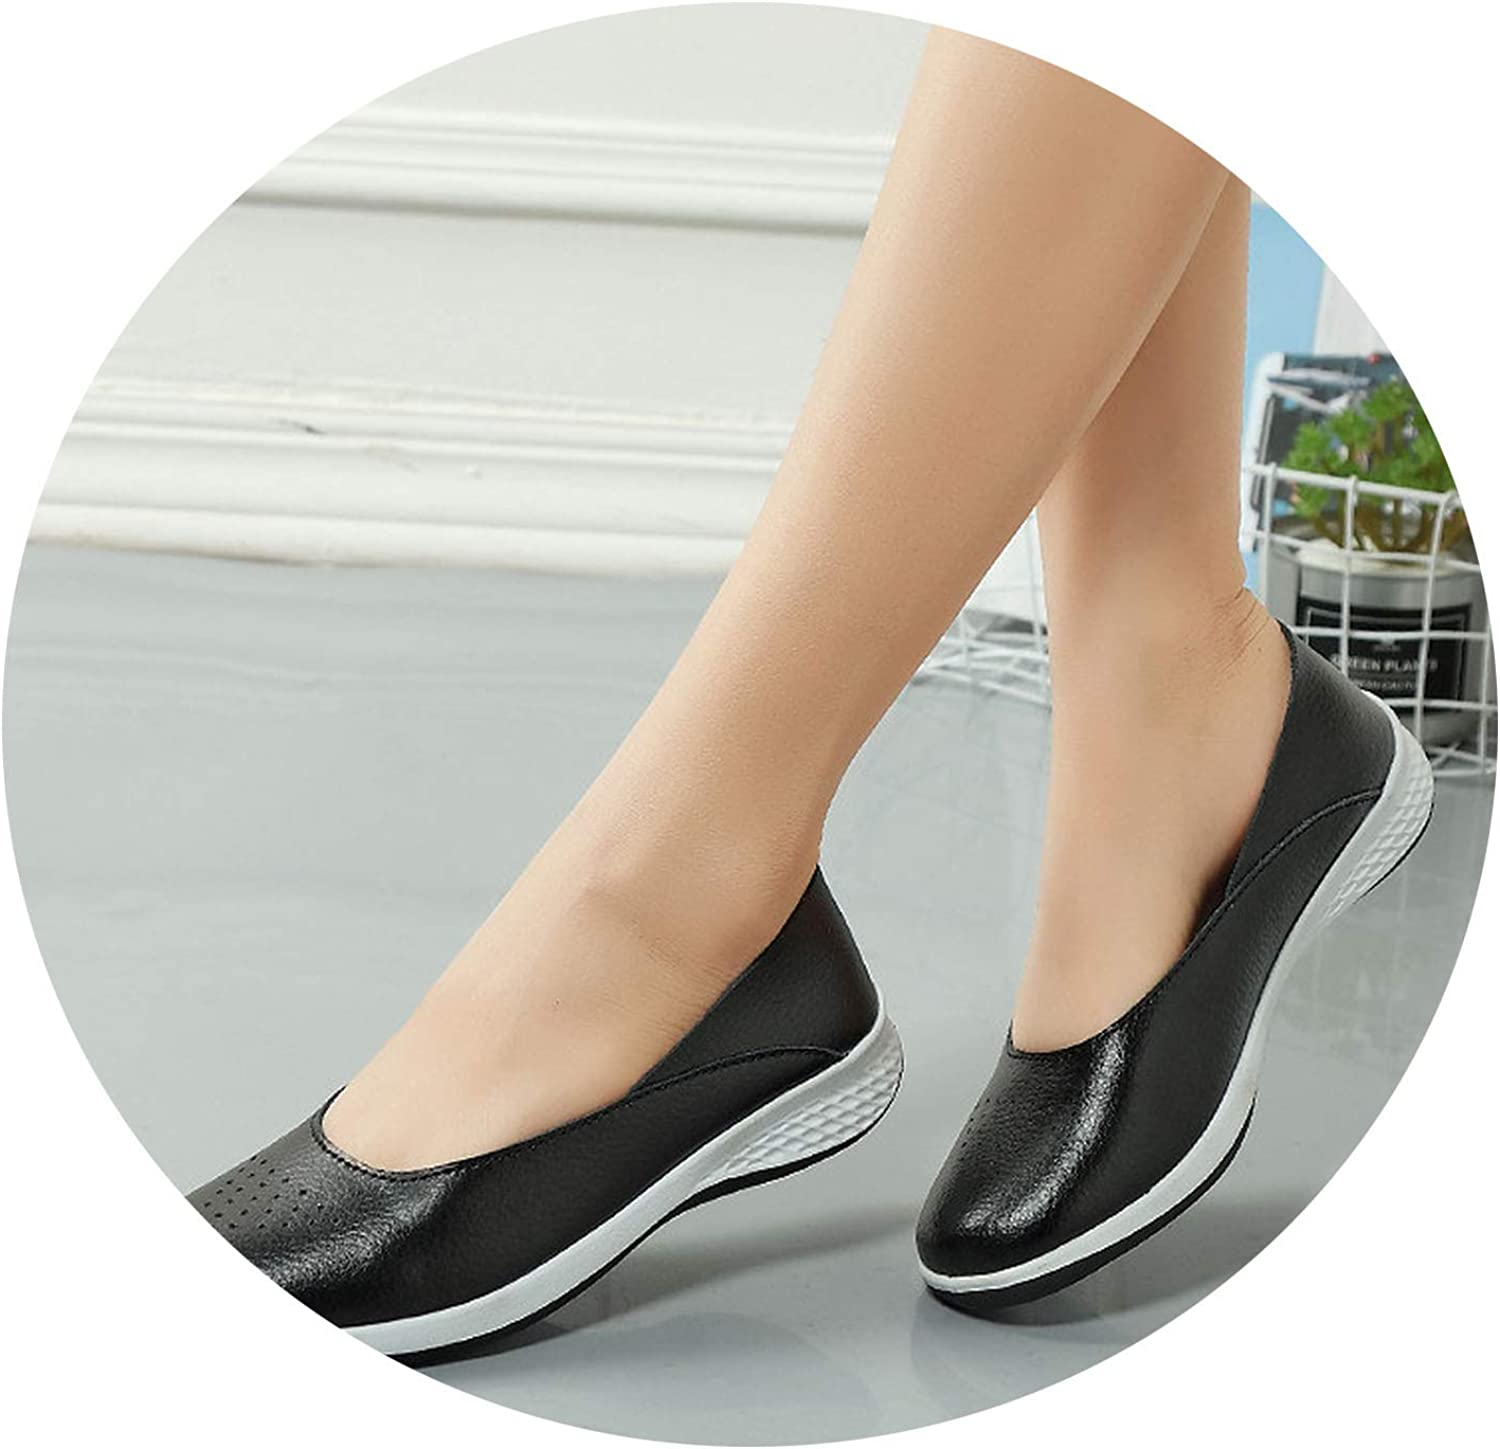 Don't mention the past 2019 Handmade New Summer Hole Loafers Women Flat Leather Moccasin shoes Woman Slip On Ladies shoes,Black,6.5